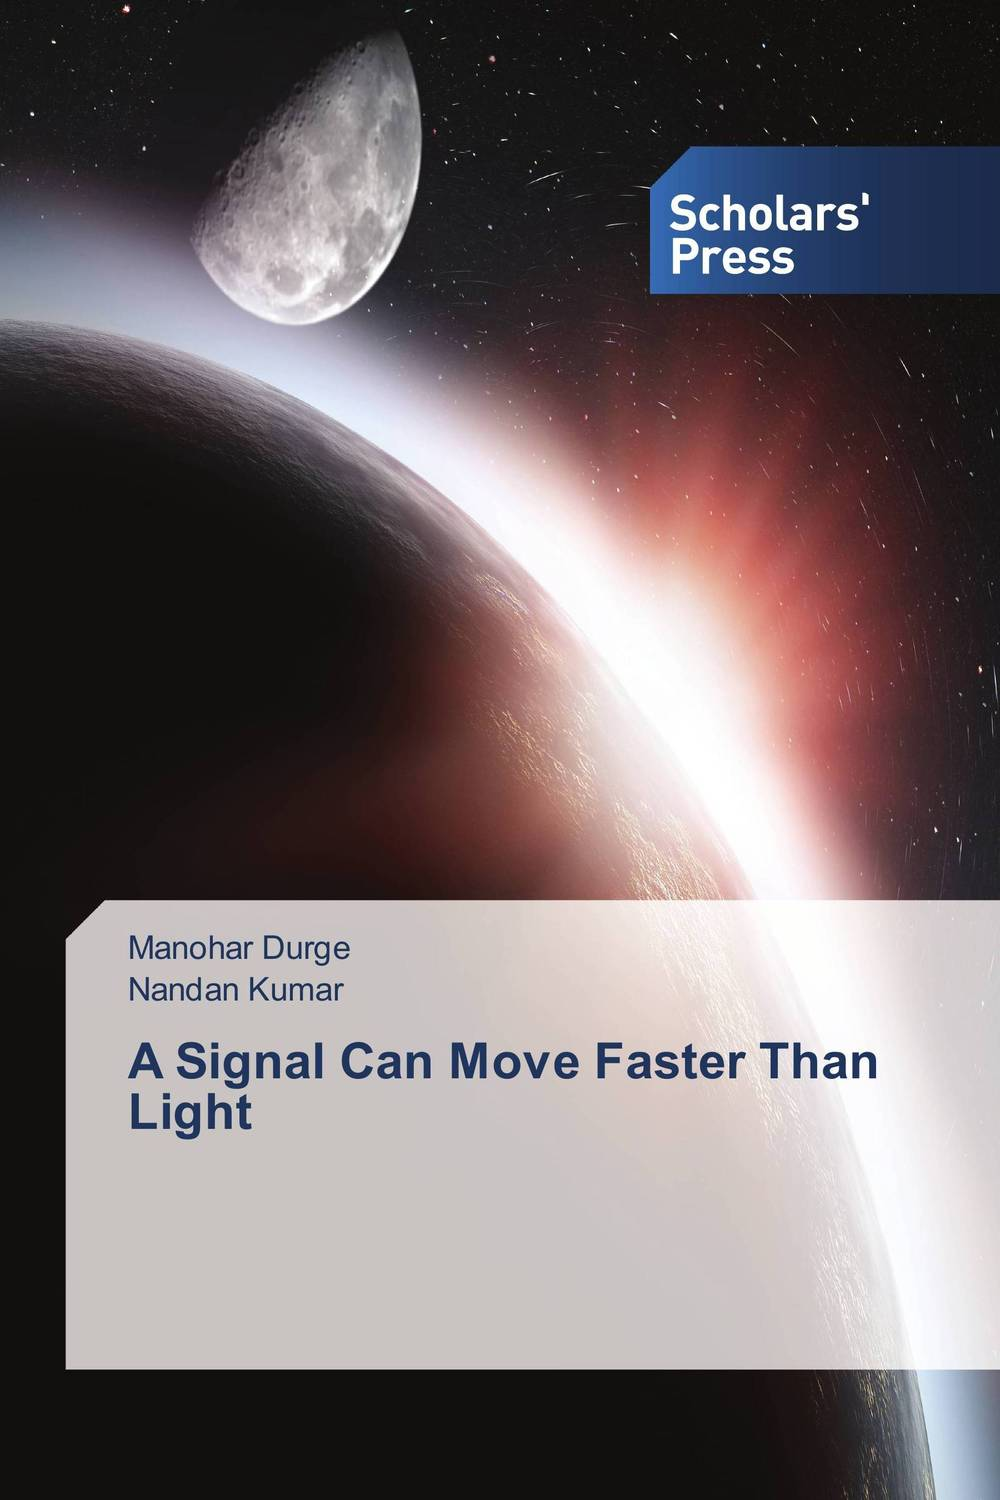 A Signal Can Move Faster Than Light stephan st031awrwq87 stephan